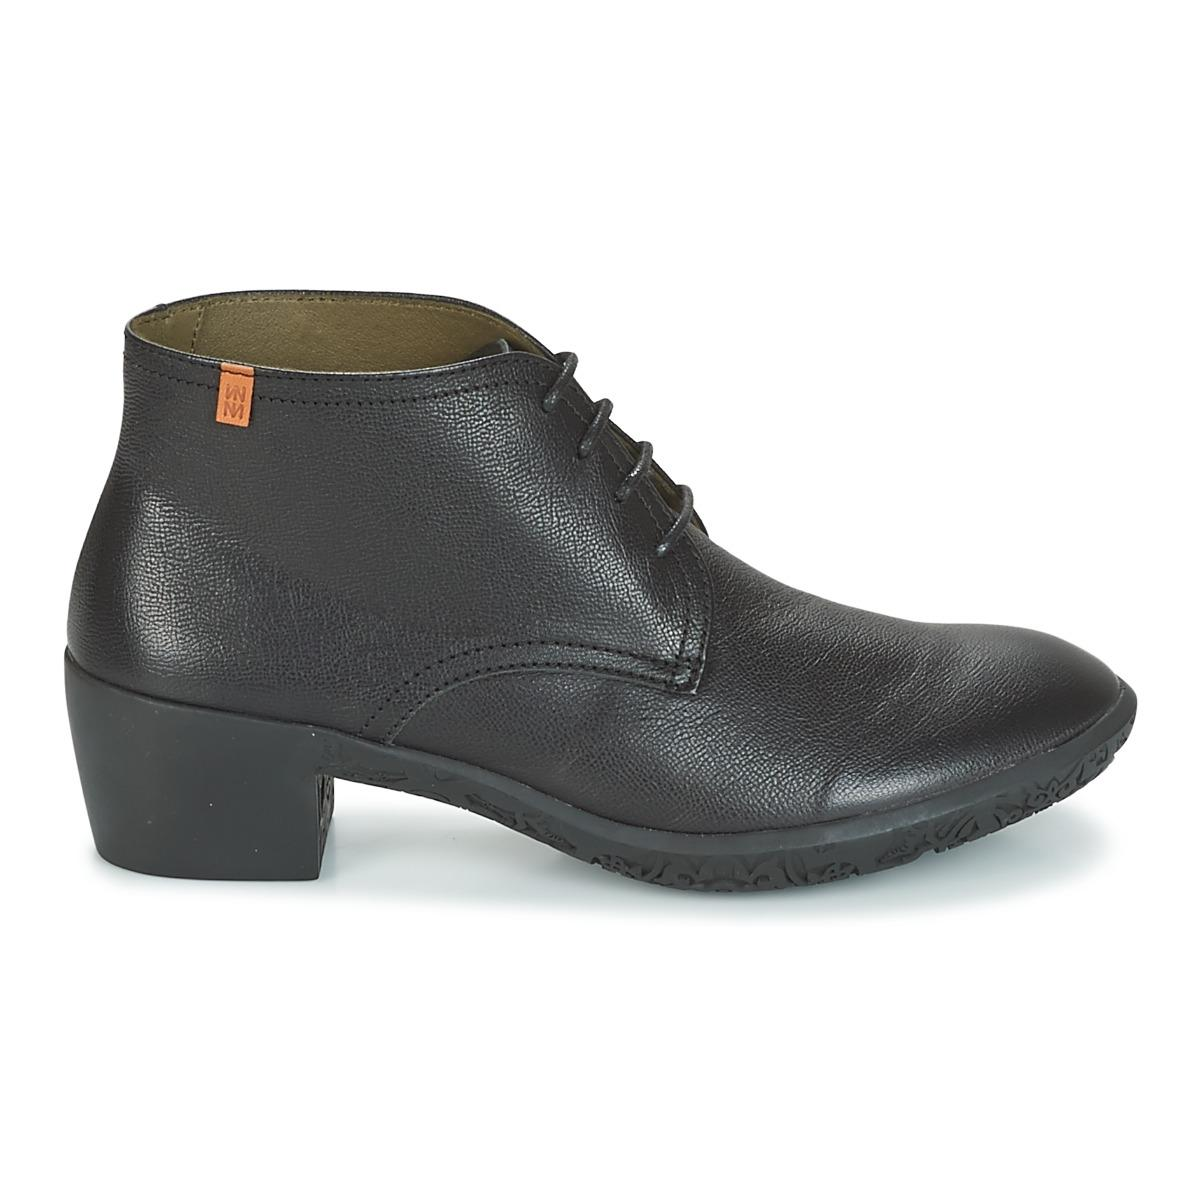 El Naturalista Alhambra Low Ankle Boots in Black